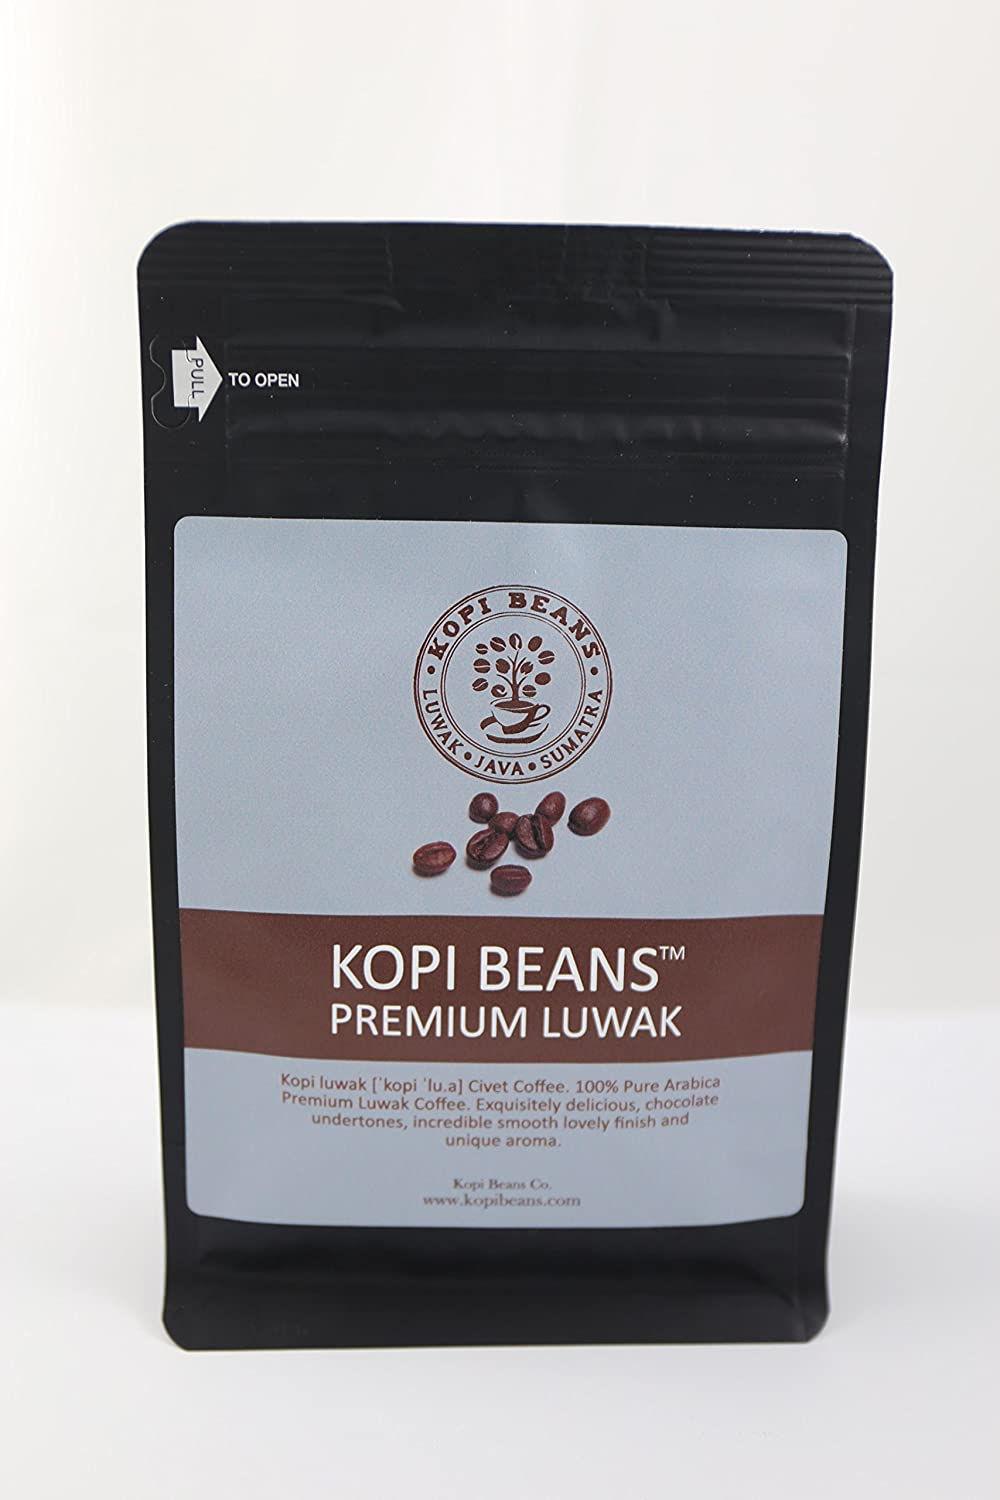 88 Kopi Luwak Packaging Premium From Indonesia Wild Lembah Cimanong 250 Gram By Amazon Coffee 100 Grams Beans Packaged In Usa Everything Else